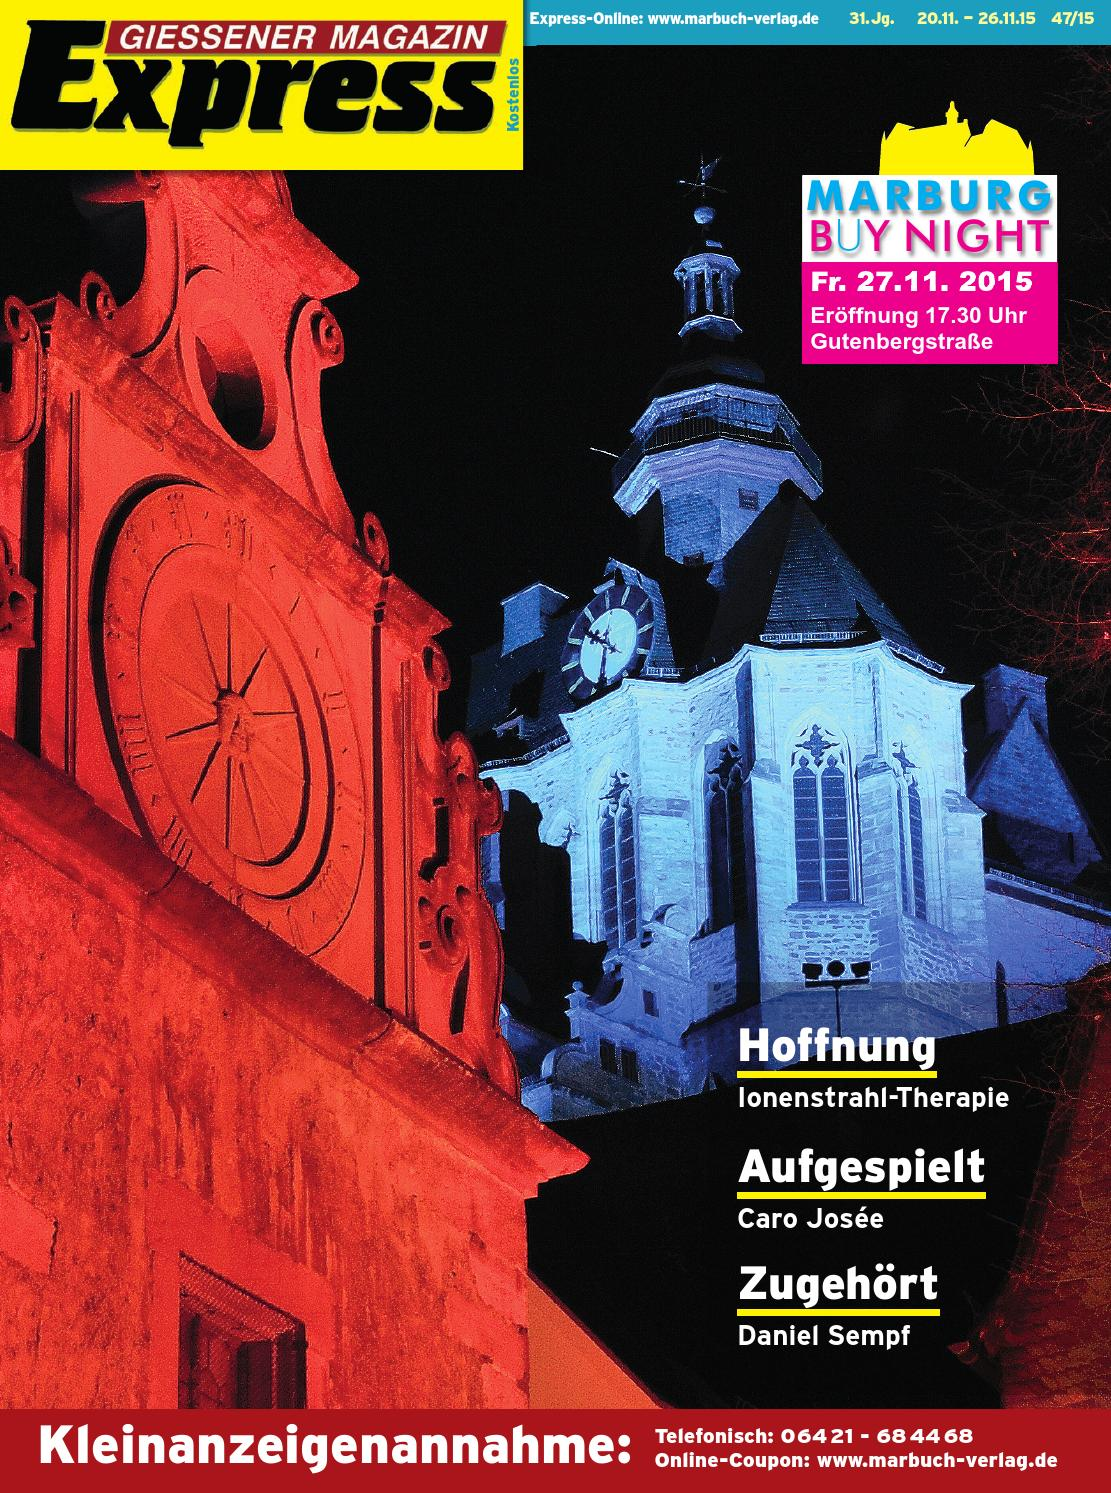 Gießener Magazin Express 47/2015 by Ulrich Butterweck - issuu